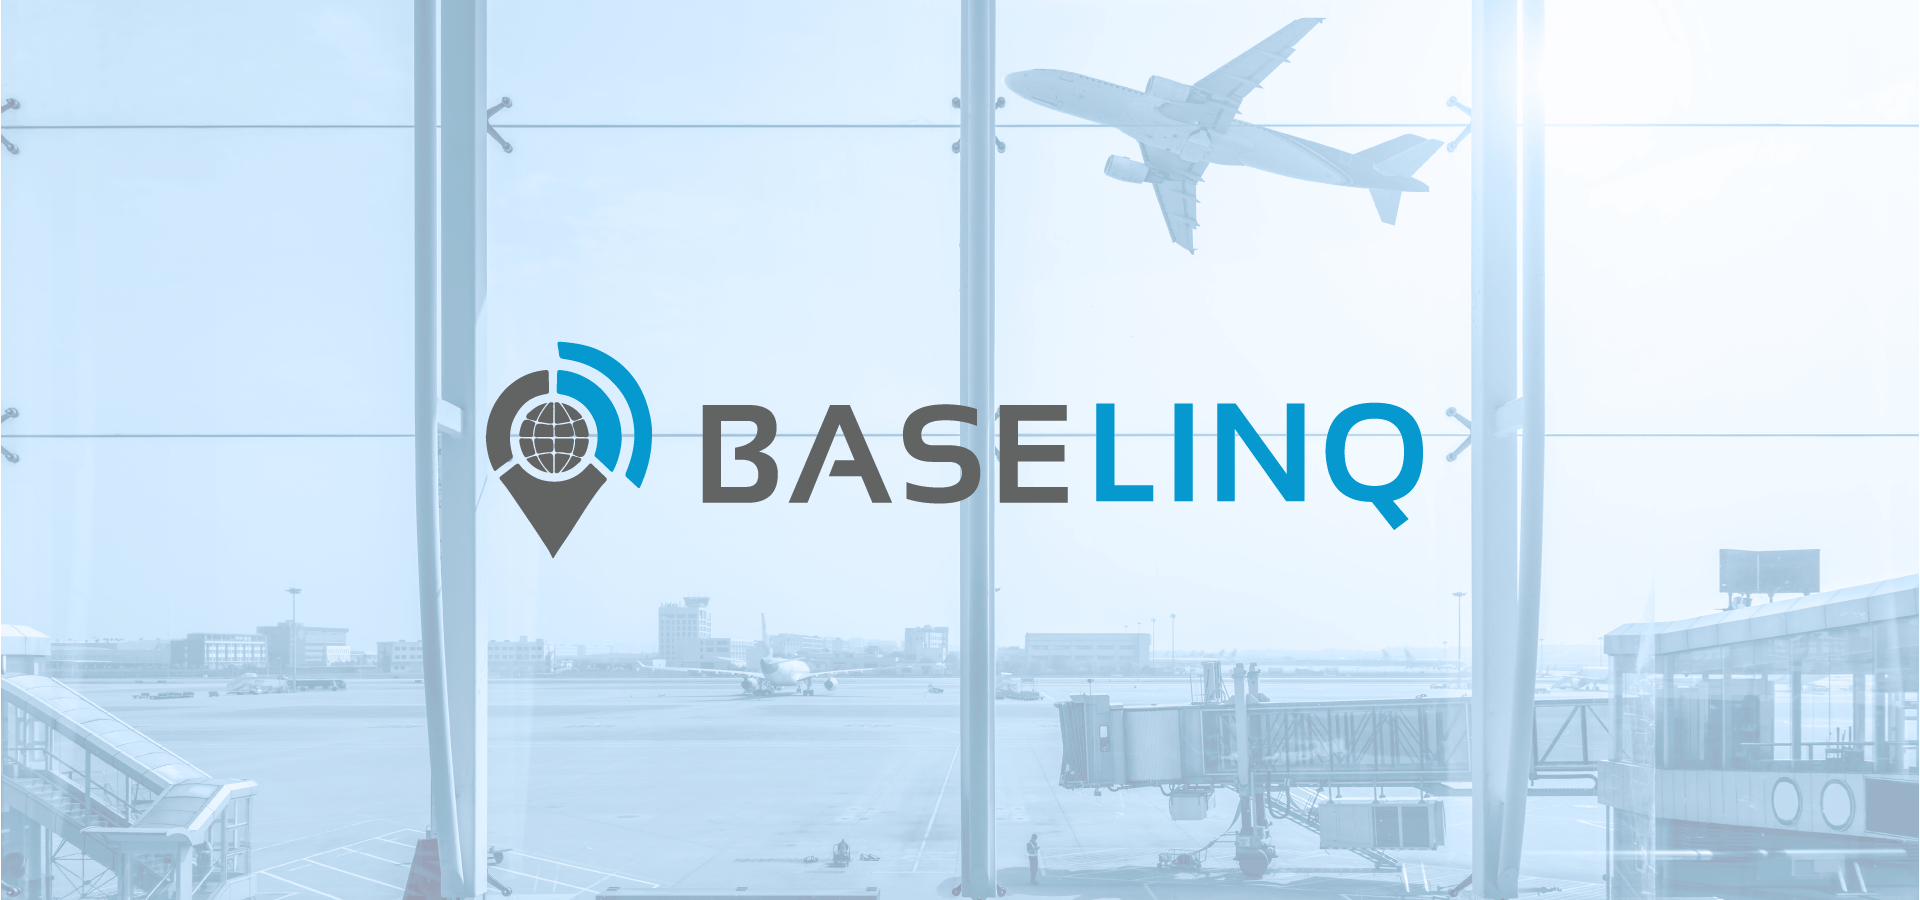 Base Linq International